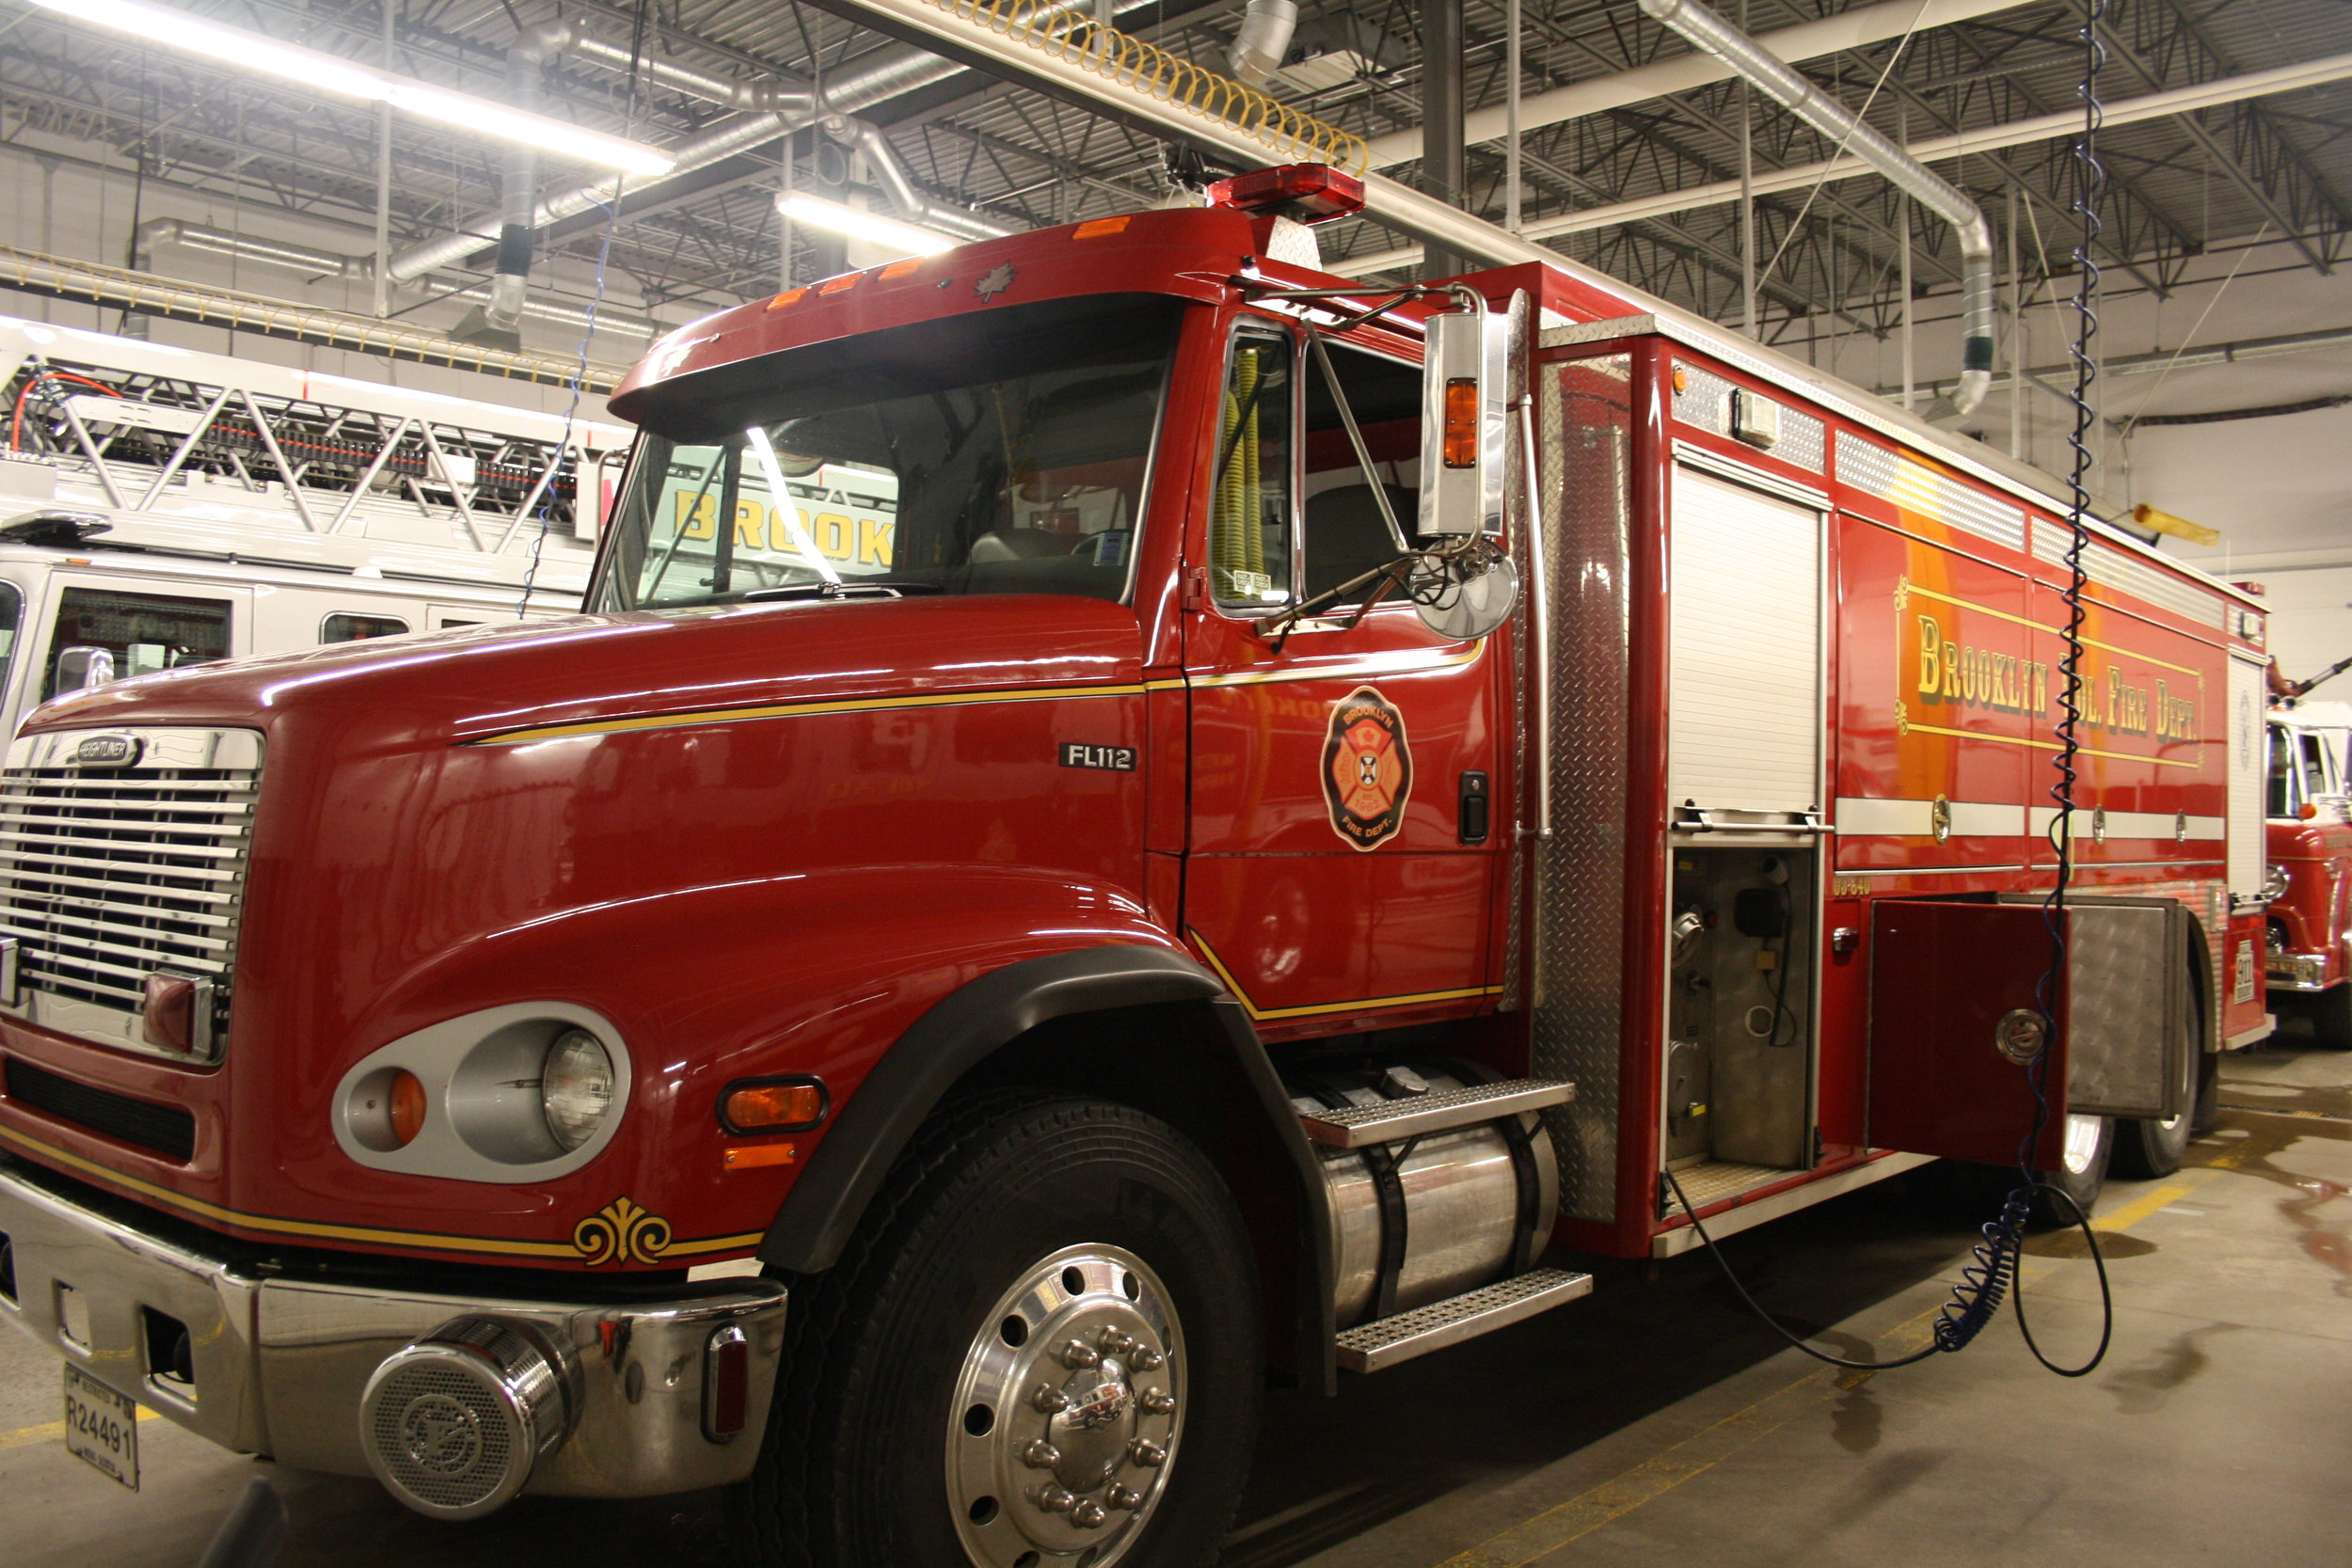 Tanker two is a 2002 frightliner FL112, with an 840 pump and 3200 gallons of water.